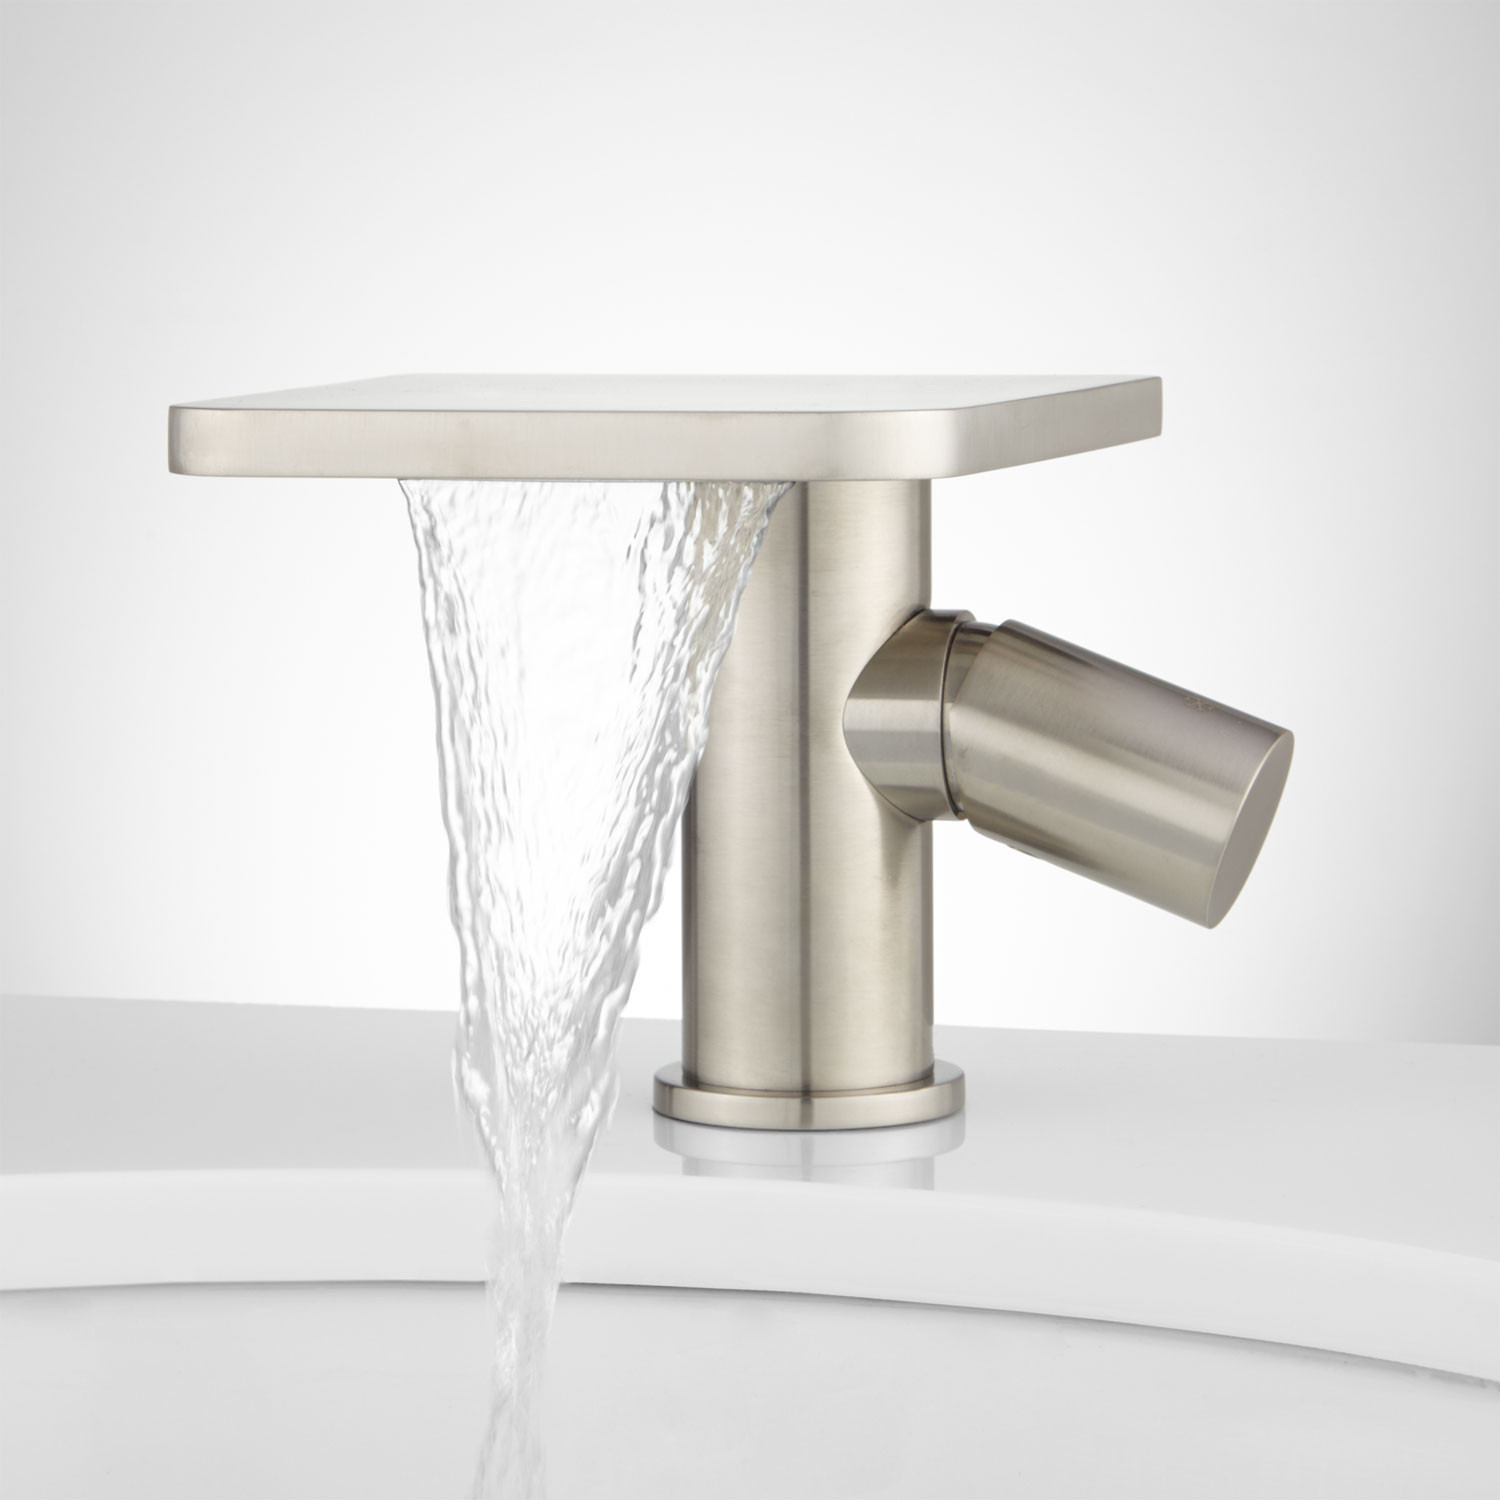 Best ideas about Waterfall Bathroom Faucet . Save or Pin Knox Single Hole Waterfall Bathroom Faucet with Pop Up Now.